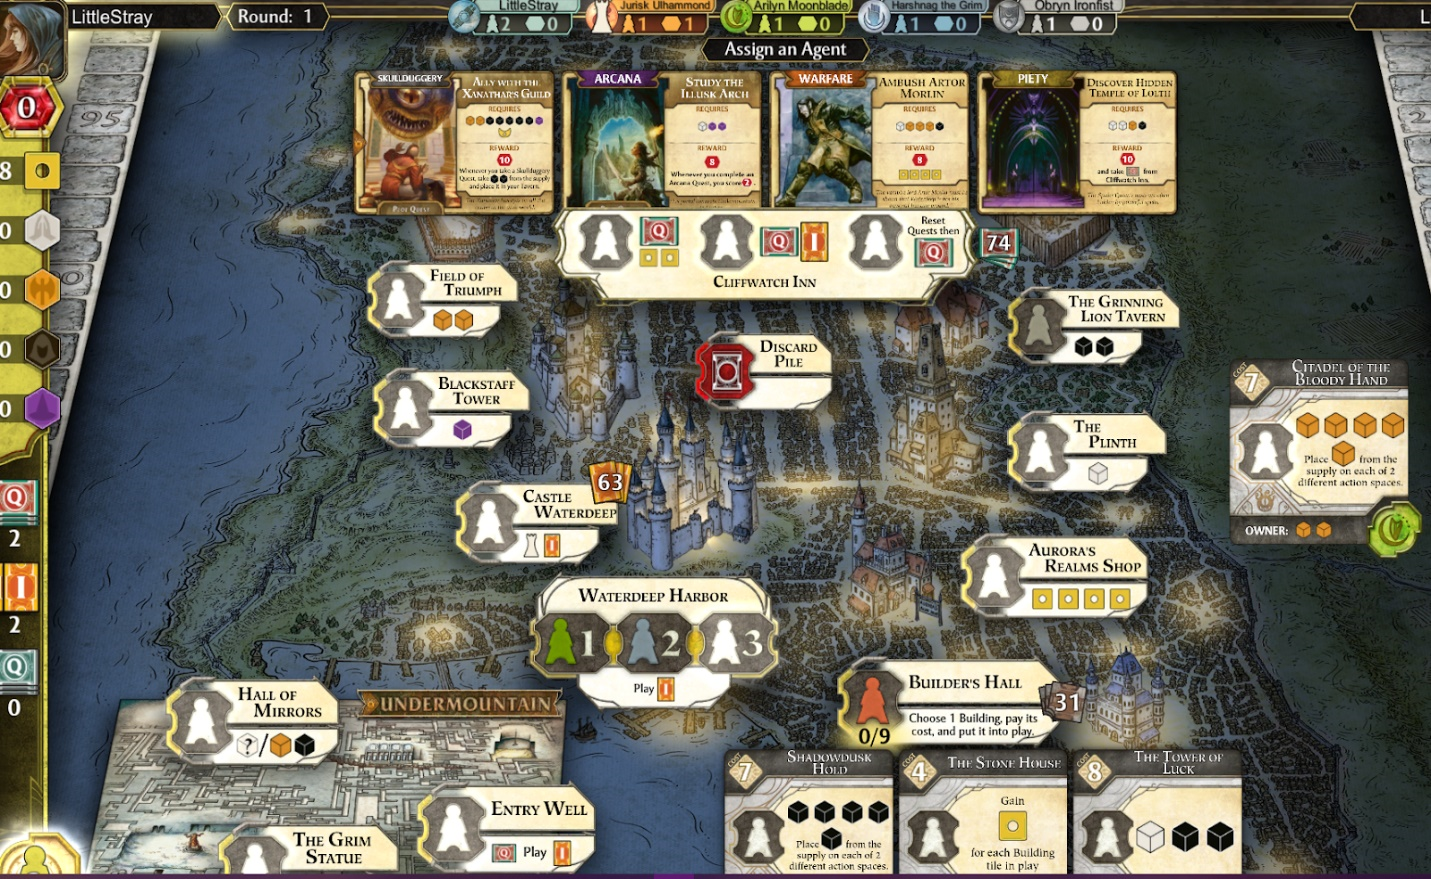 BGB Lords of Waterdeep Steam Screen